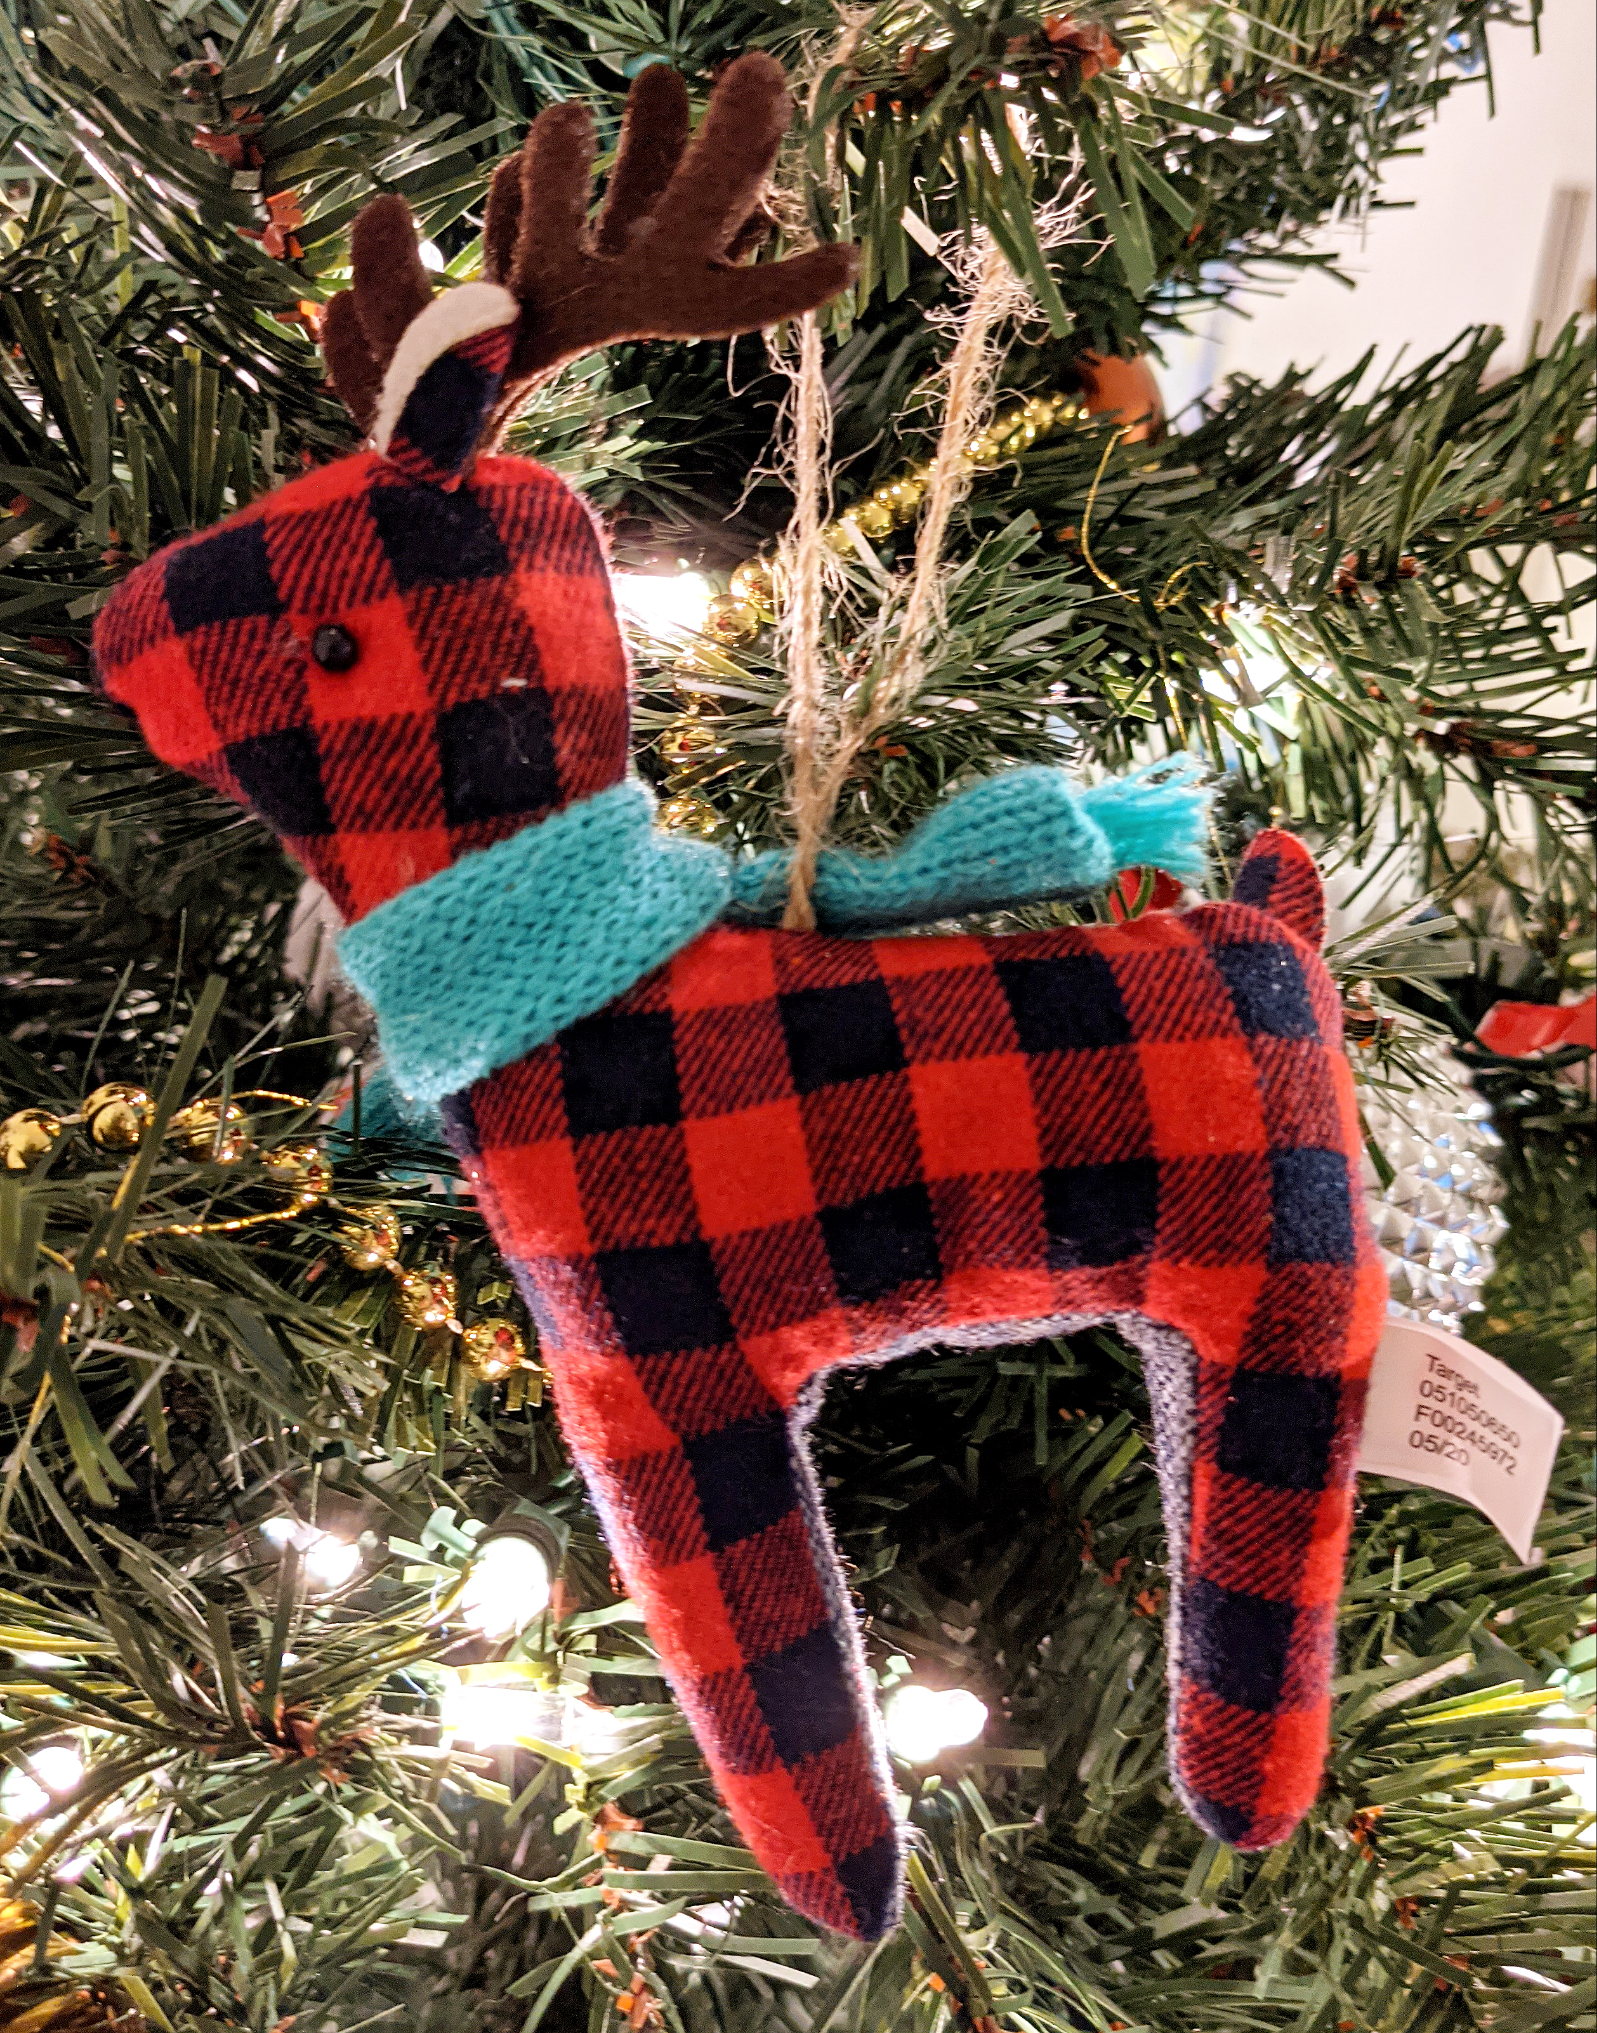 A black and red plush reindeer with brown antlers and black beads for eyes wears a green scarf.